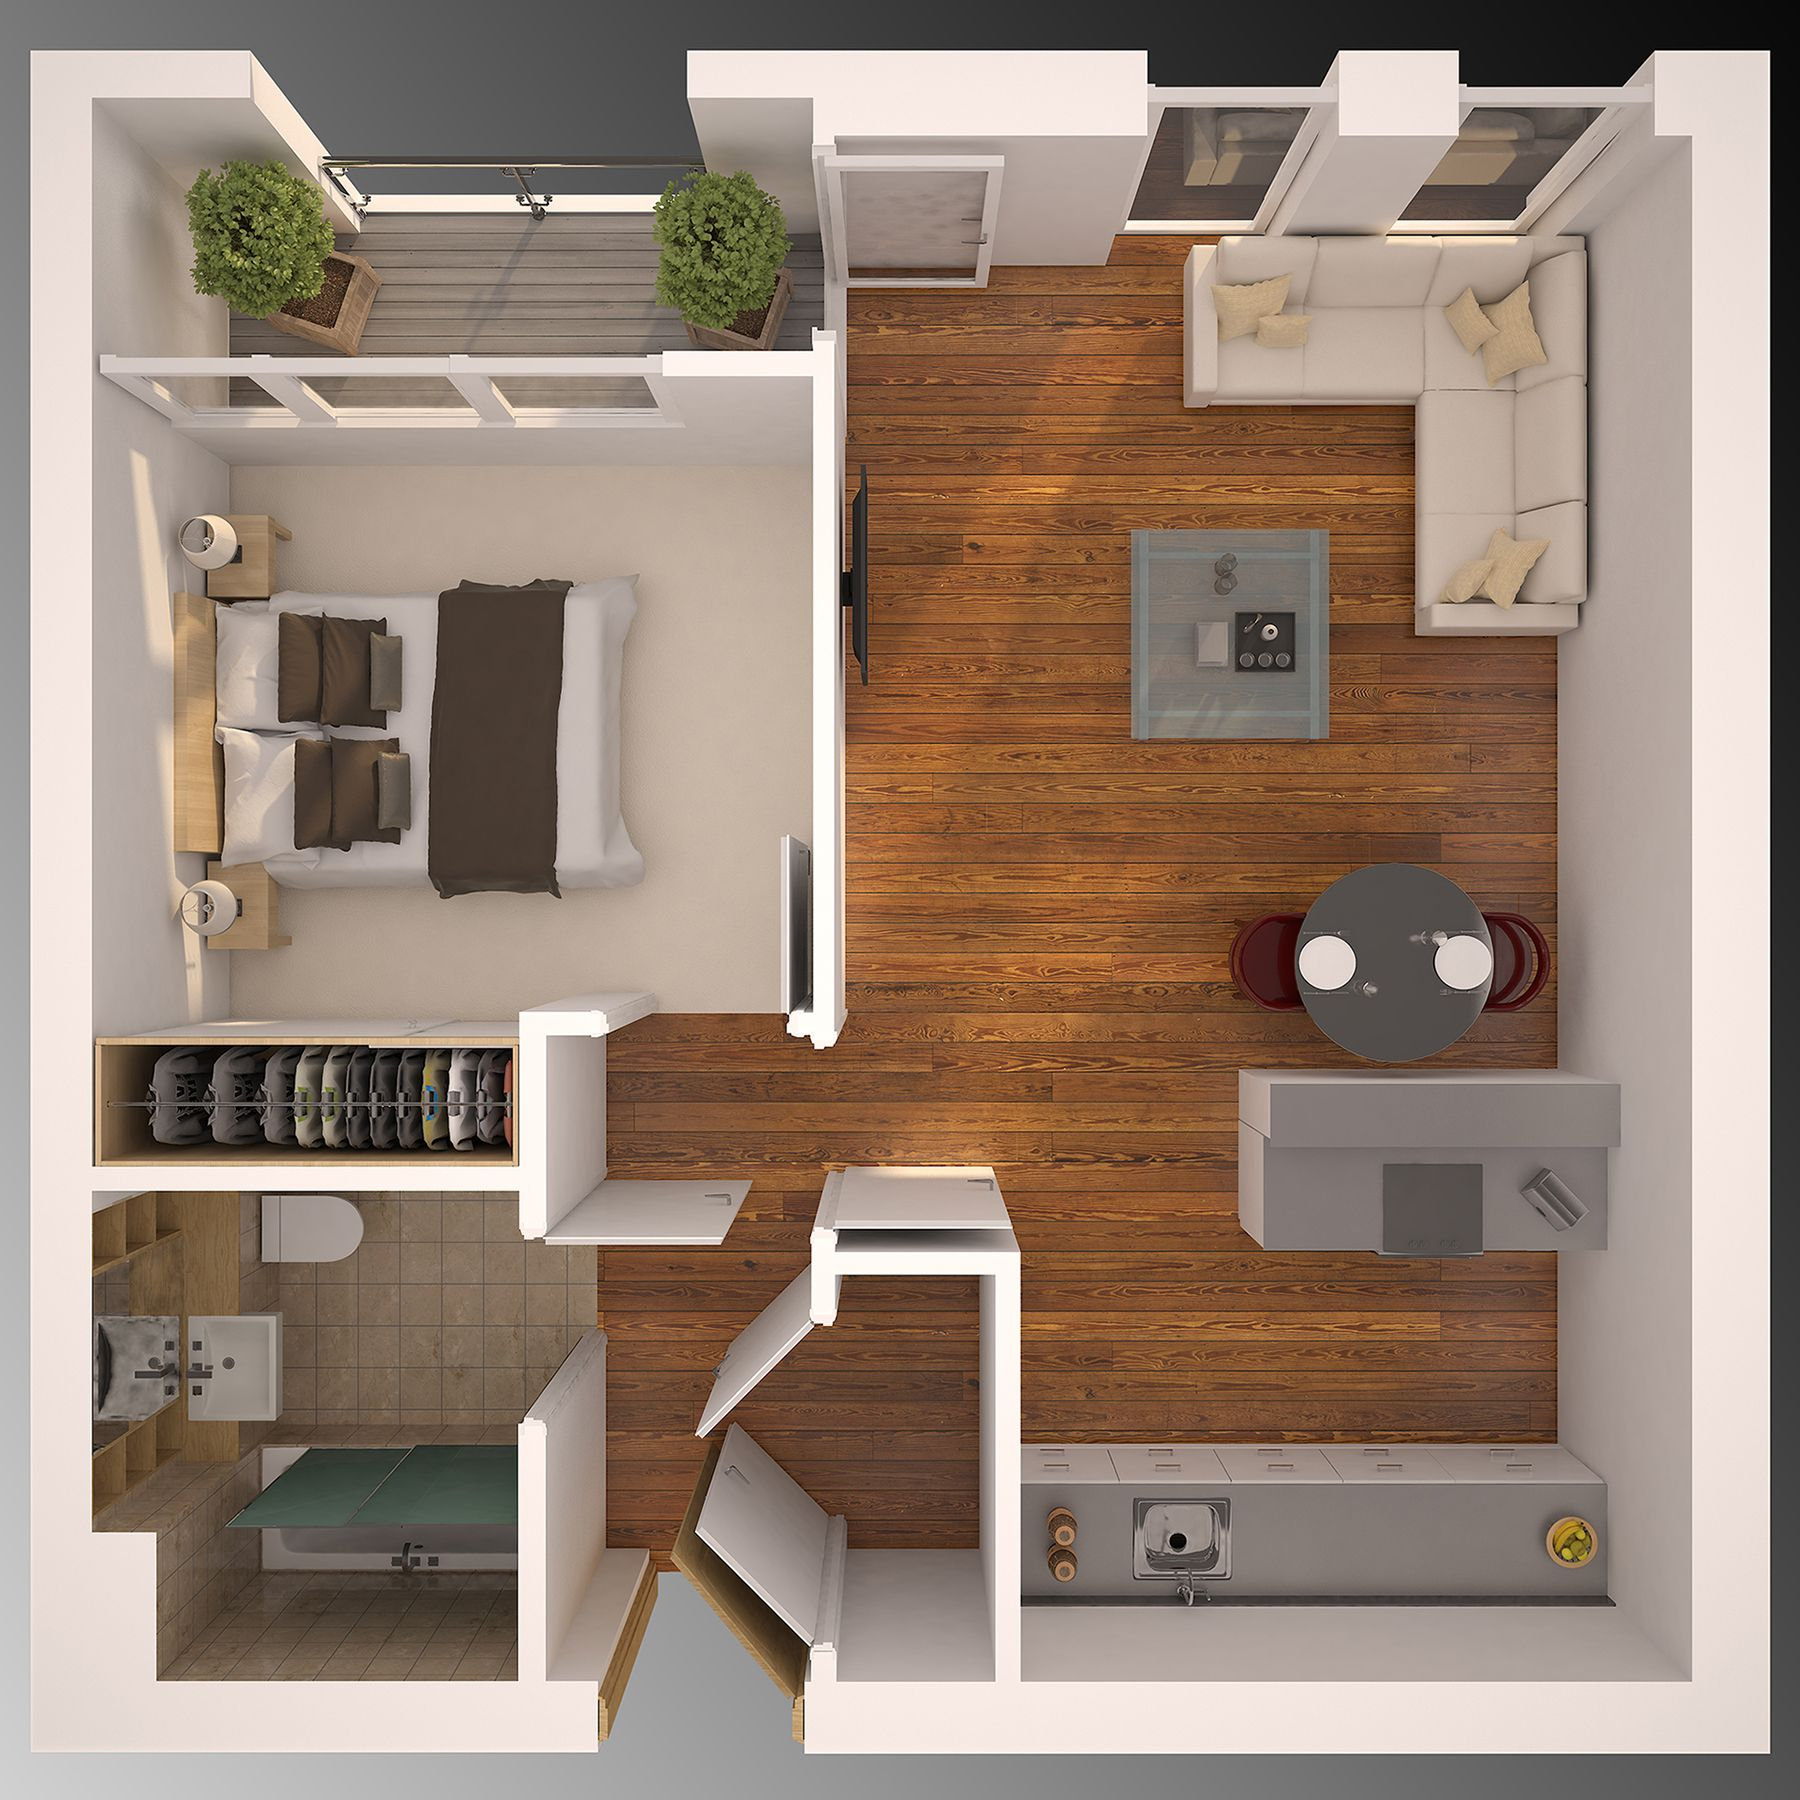 3D Floor plan vray ,3ds max ,affter effect and